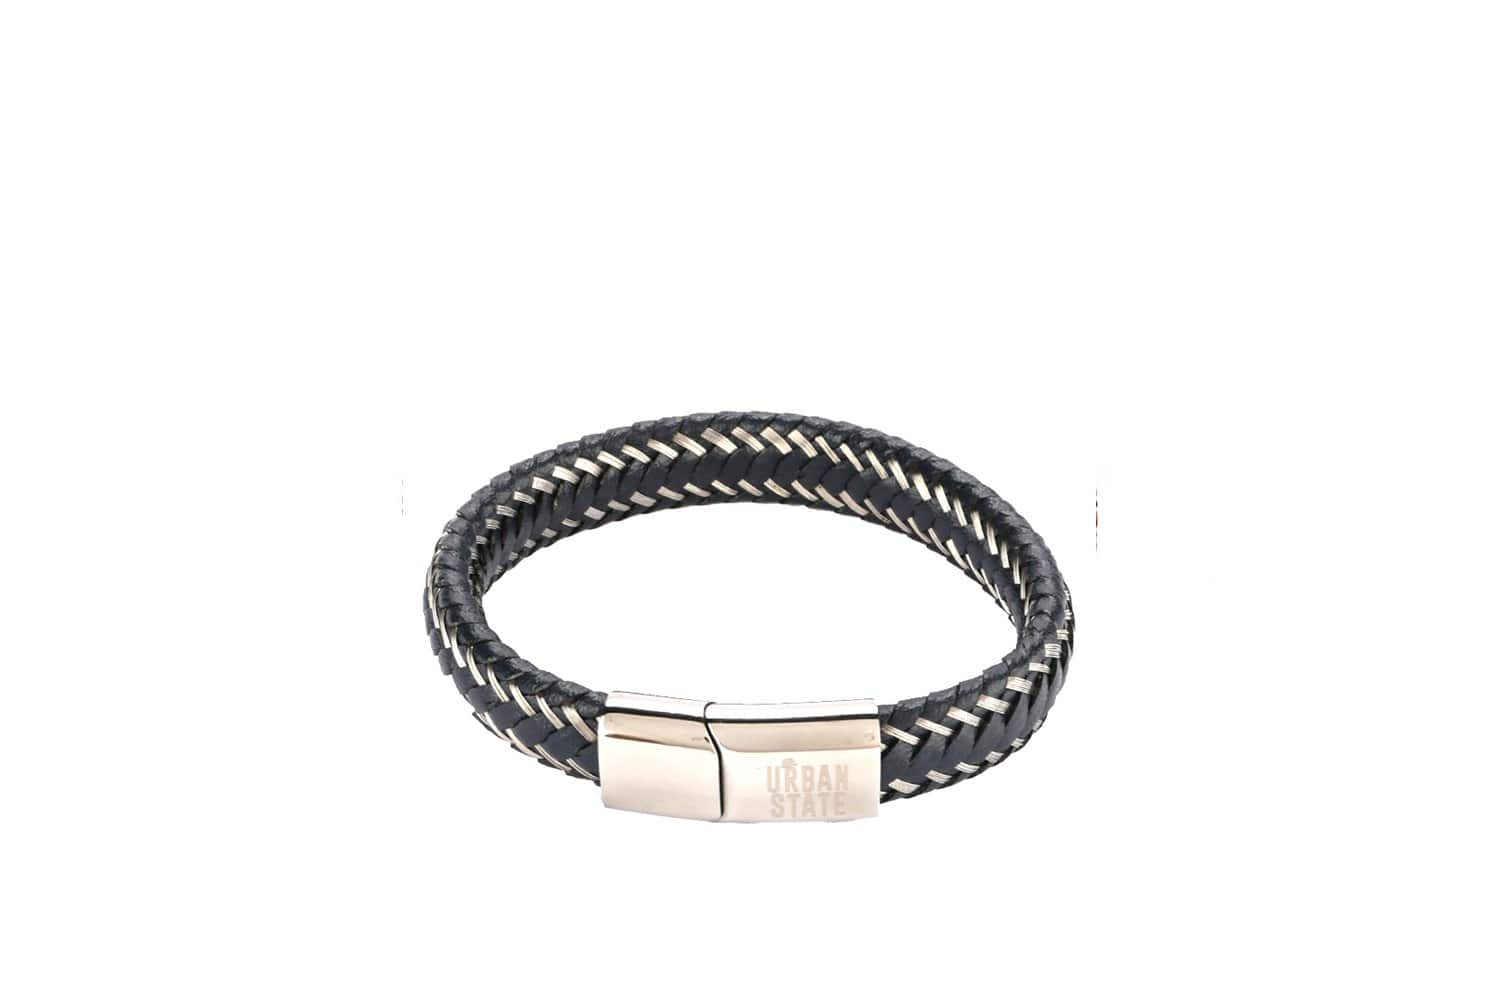 Multi-Strand Woven Leather Bracelet - Navy Bracelets - Urban State Indonesia